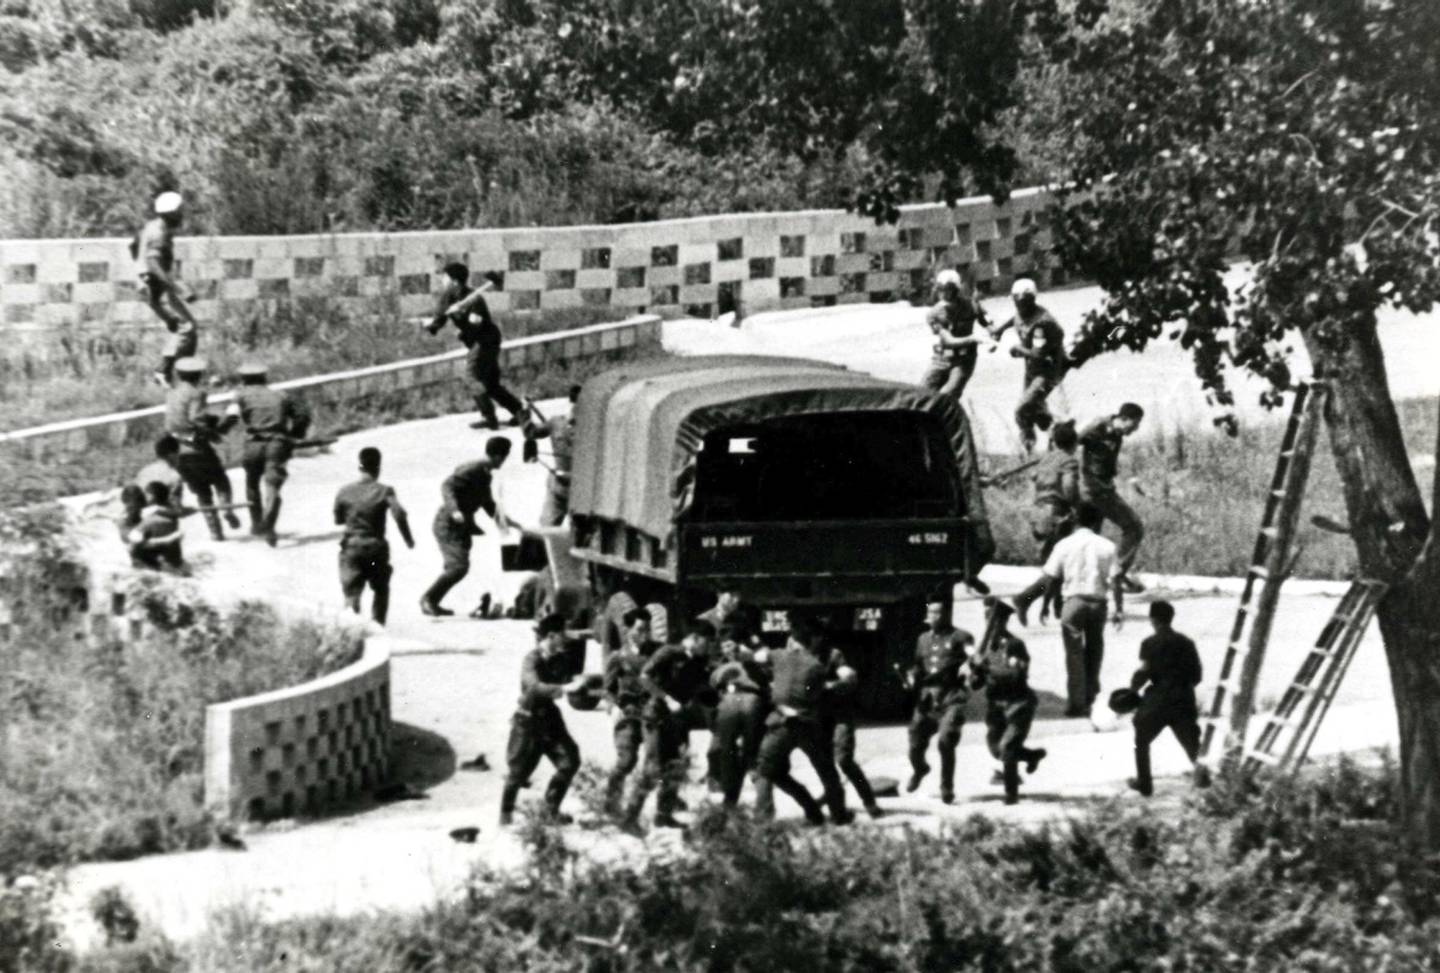 In this Aug. 18, 1976, file photo, North Korean soldiers attack United Nations Command personnel wearing helmets at the truce village of Panmunjom, South Korea.